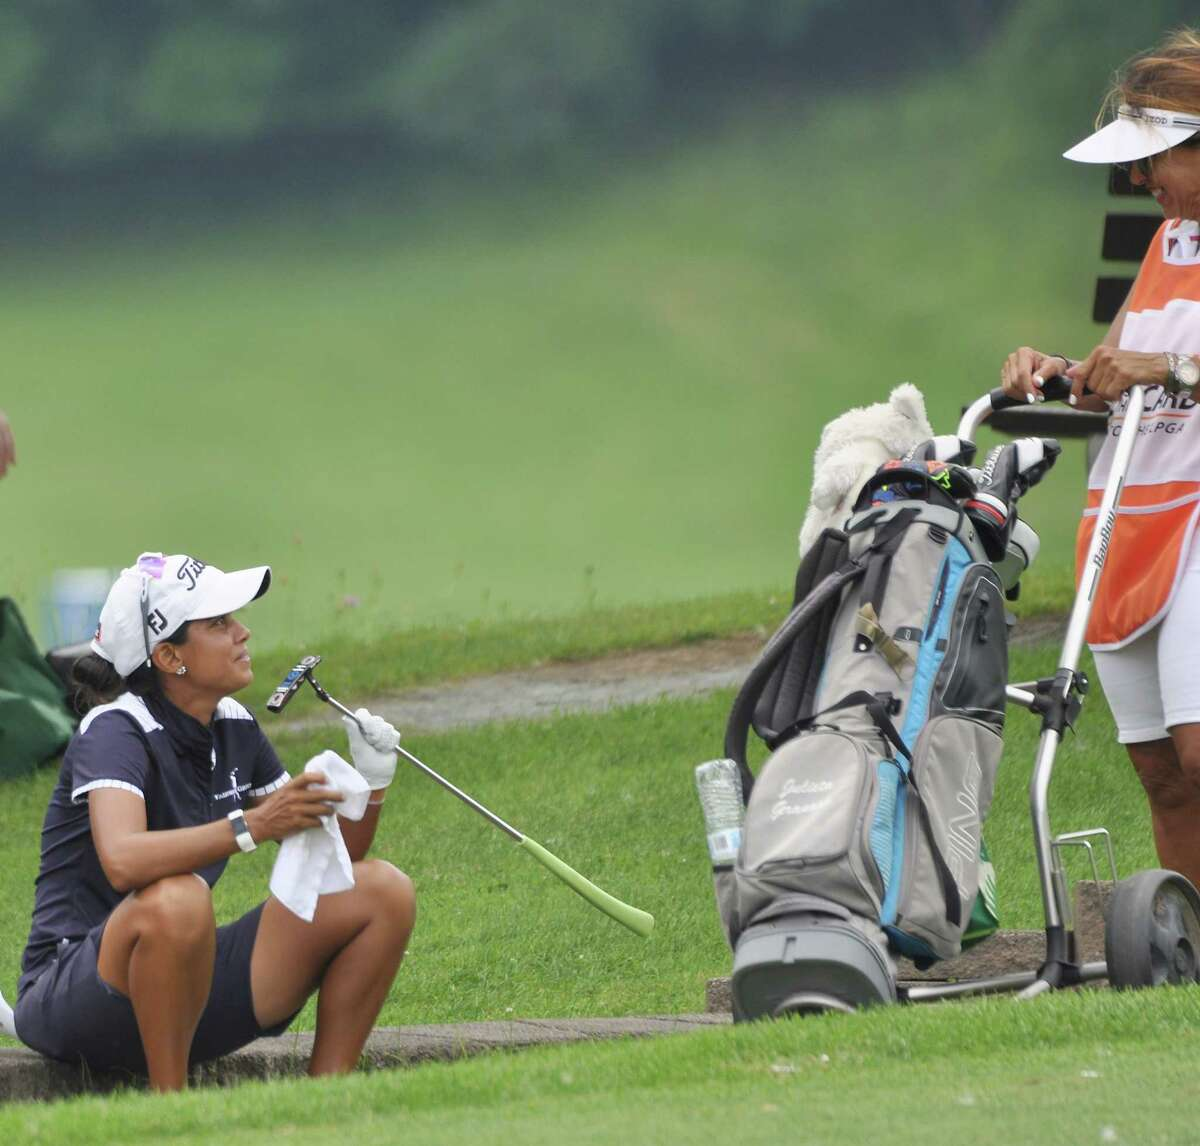 Julieta Granada kisses her putter on the final hole of the CDPHP Open at Capital Hills at Albany, the Albany stop for the women's professional Symetra golf tour, on Sunday, July 28, 2019. She was laughing with her mom/caddie Rosa. The Olympian finished tied for 16th at -7. She is on track to earn an exemption to the LPGA tour for the 2020 season. (Joyce Bassett / Times Union)